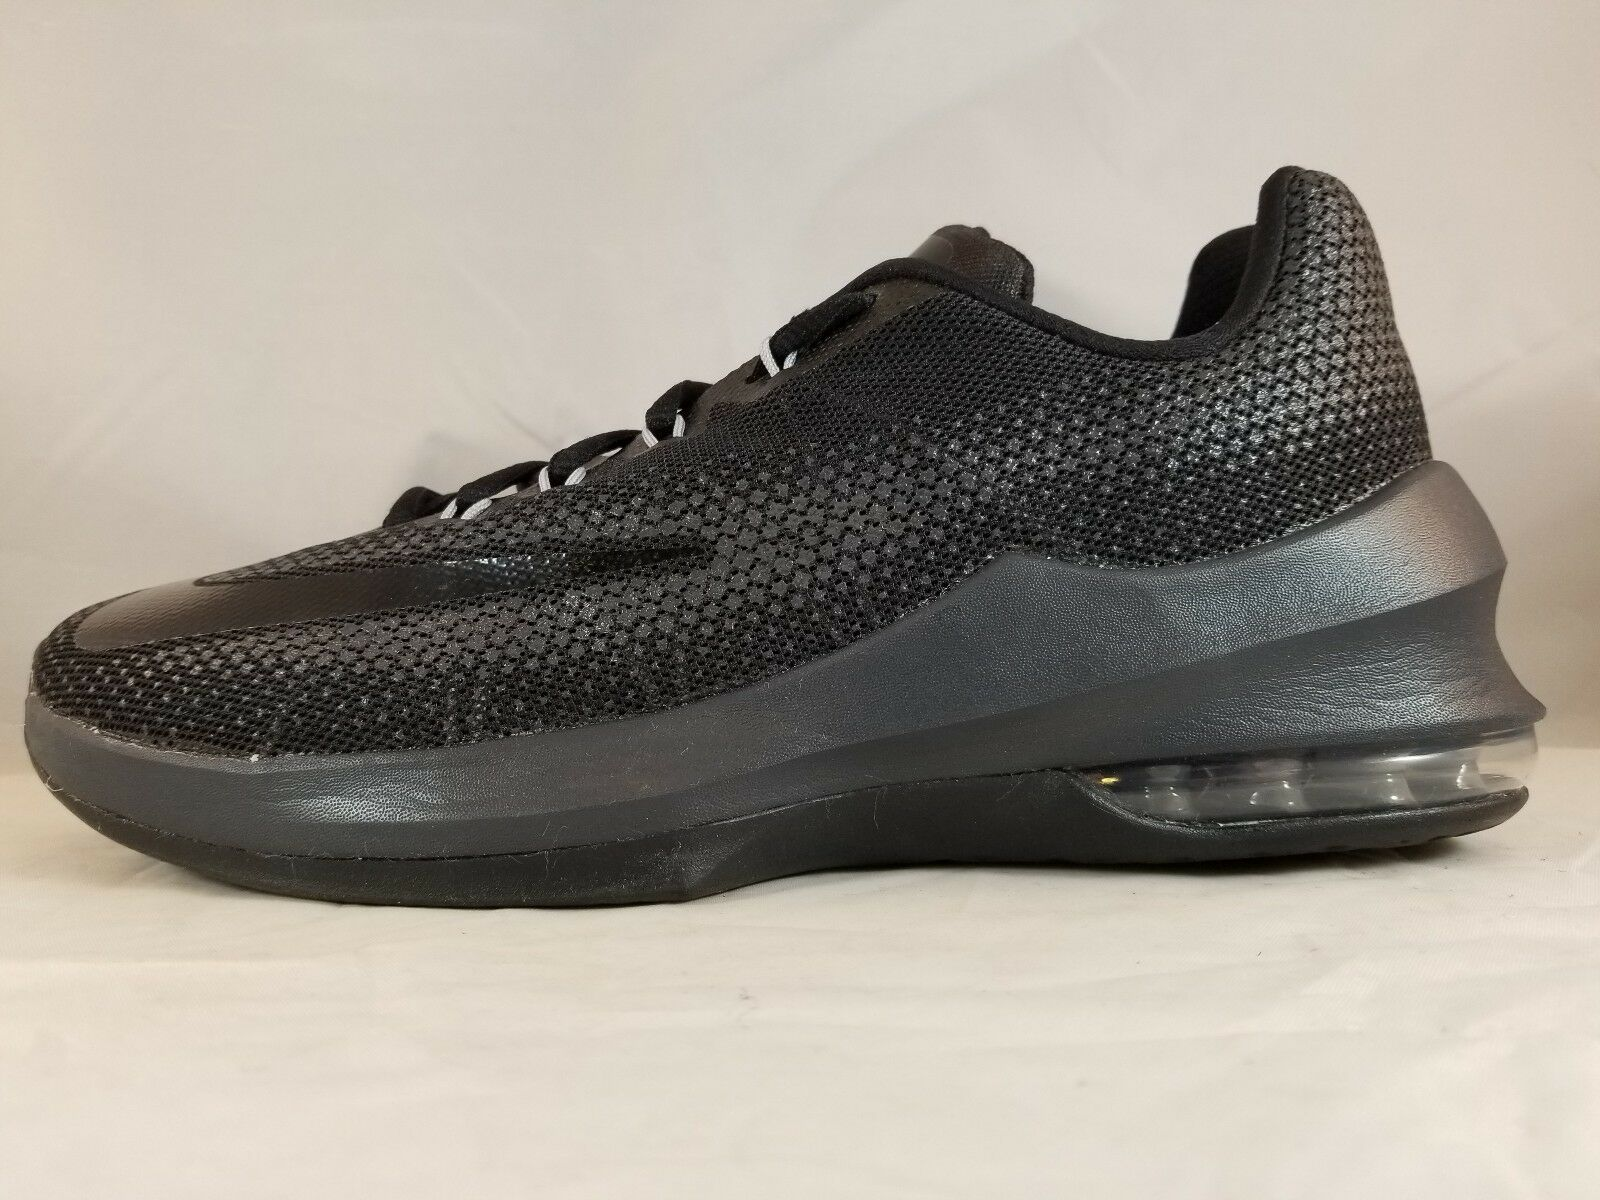 Nike Air Max Infuriate Low Men Basketball Shoe 852457 001 Size 7.5